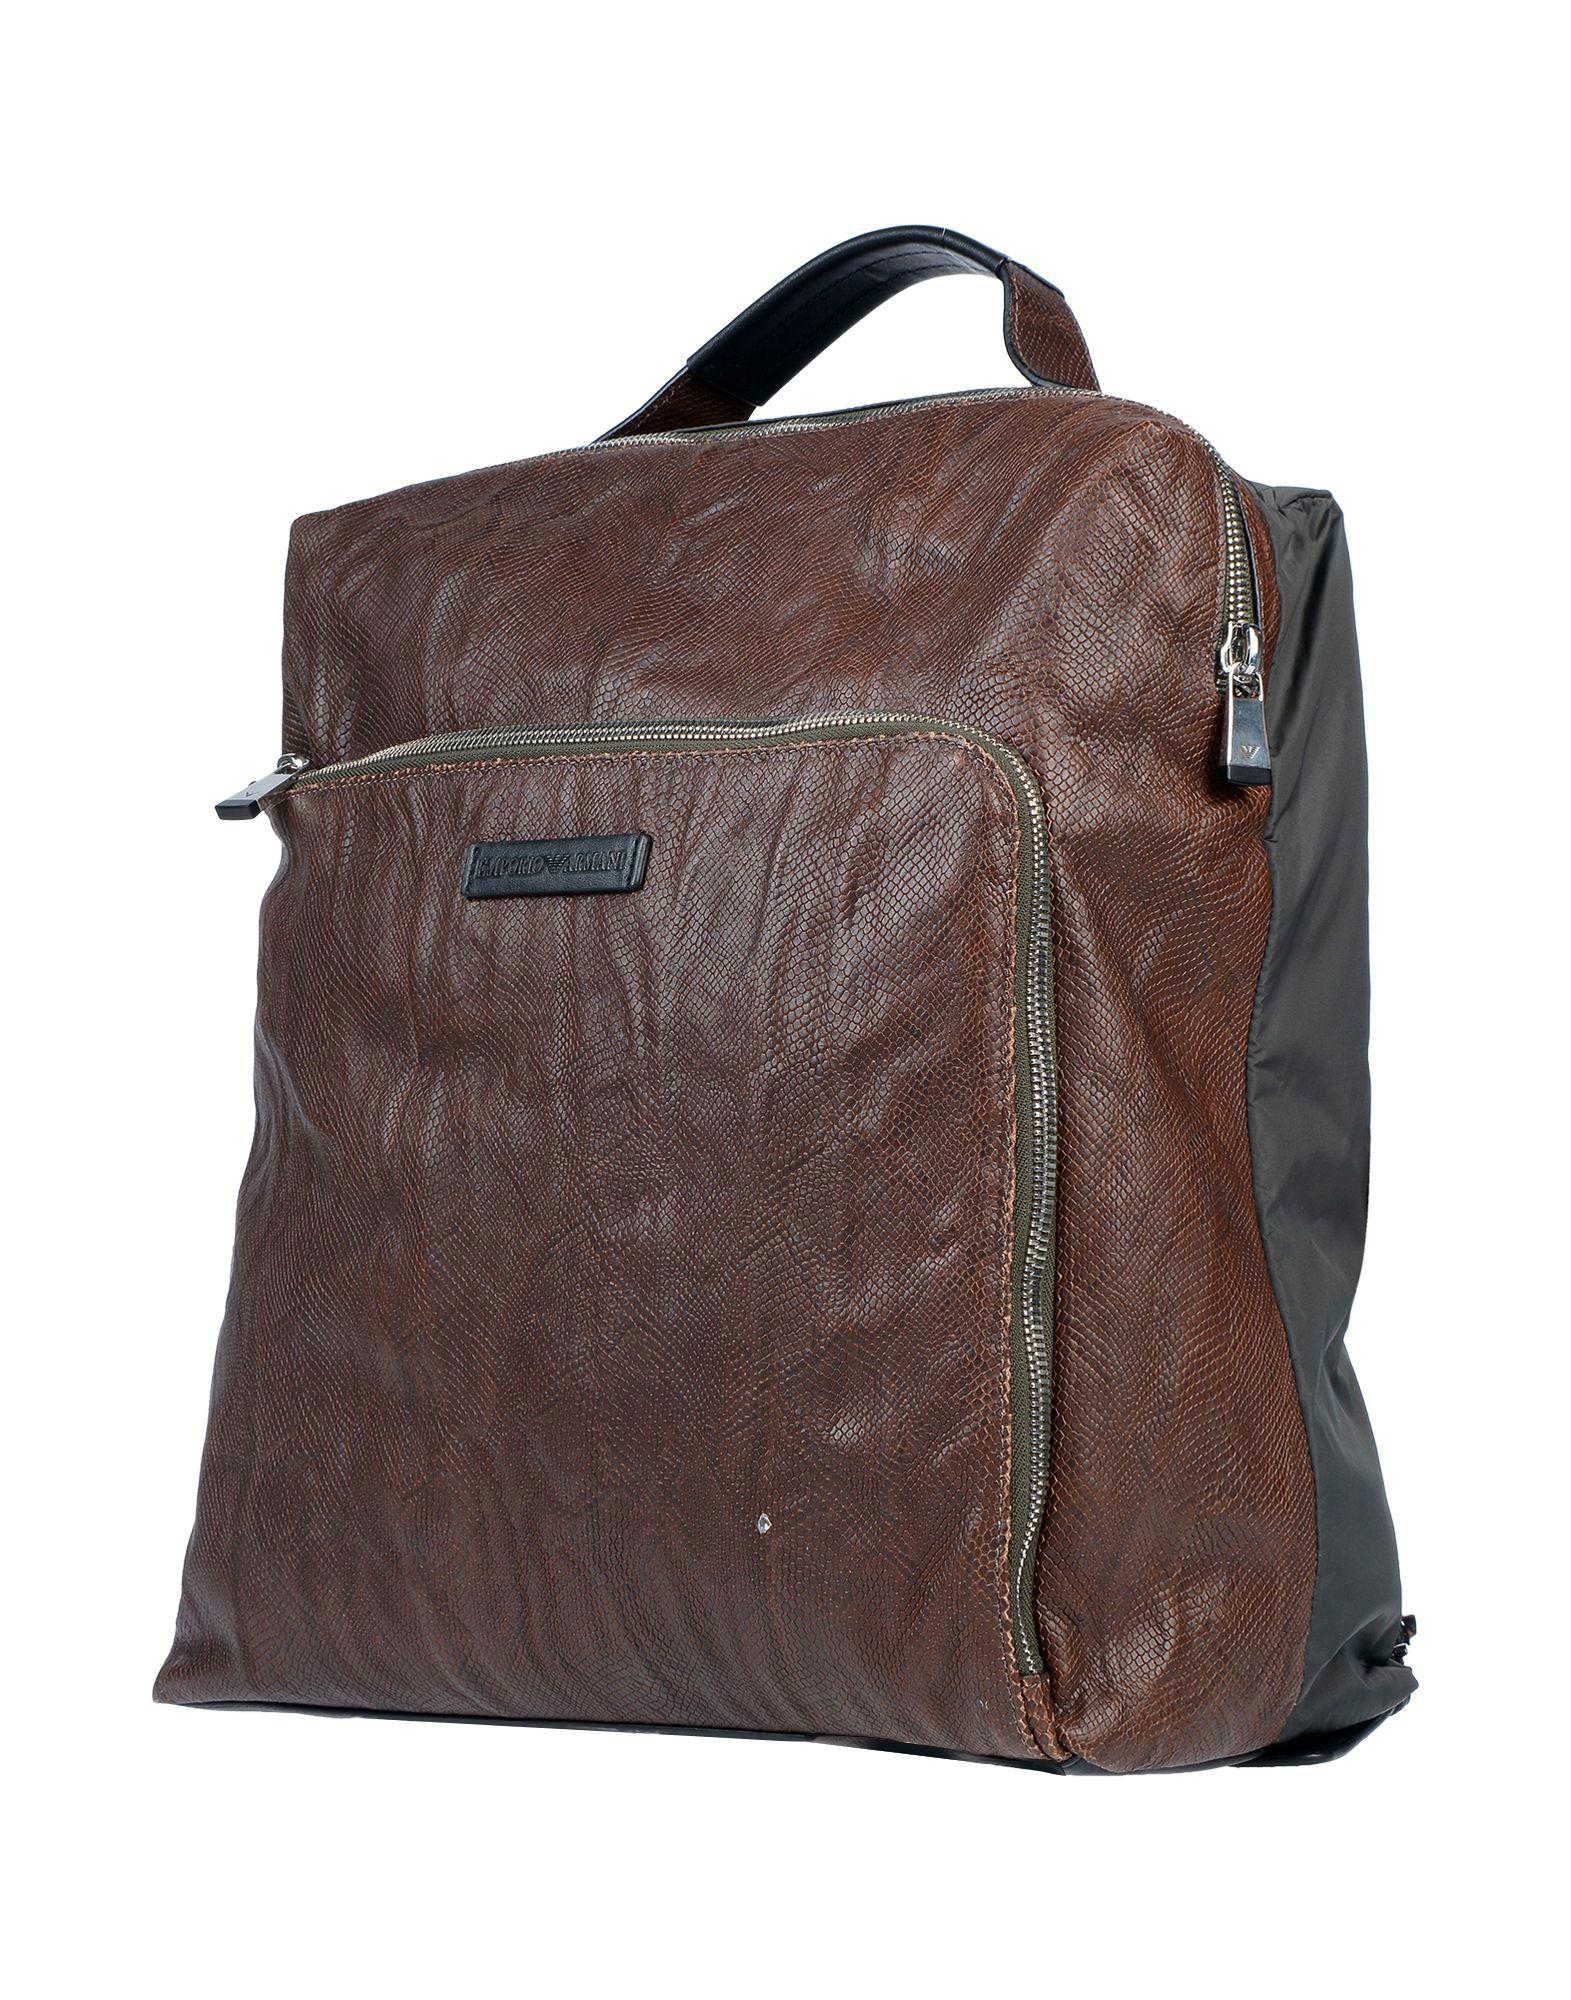 Emporio Armani Backpacks   Bum Bags in Brown for Men - Lyst 32a94e7586009